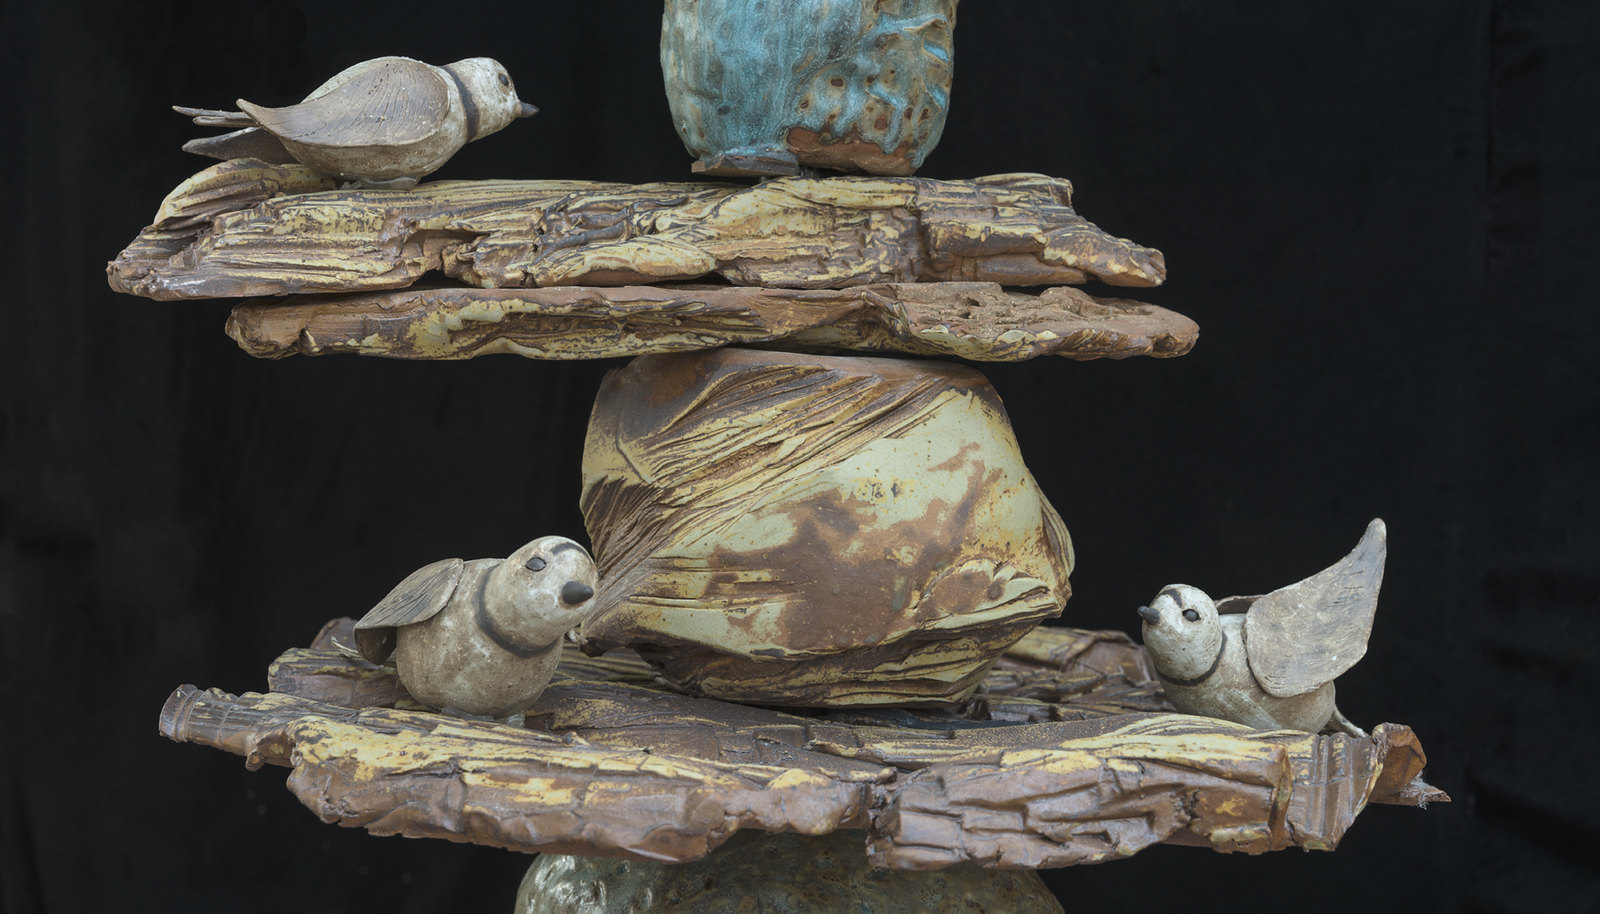 """10 sculptures were created by Ann Arbor Potters Guild artists for an exhibition at the University of Michigan Matthaei Botanical Gardens titled """"A Garden of Earthly Delights."""" Image credit: Jeri Hollister."""